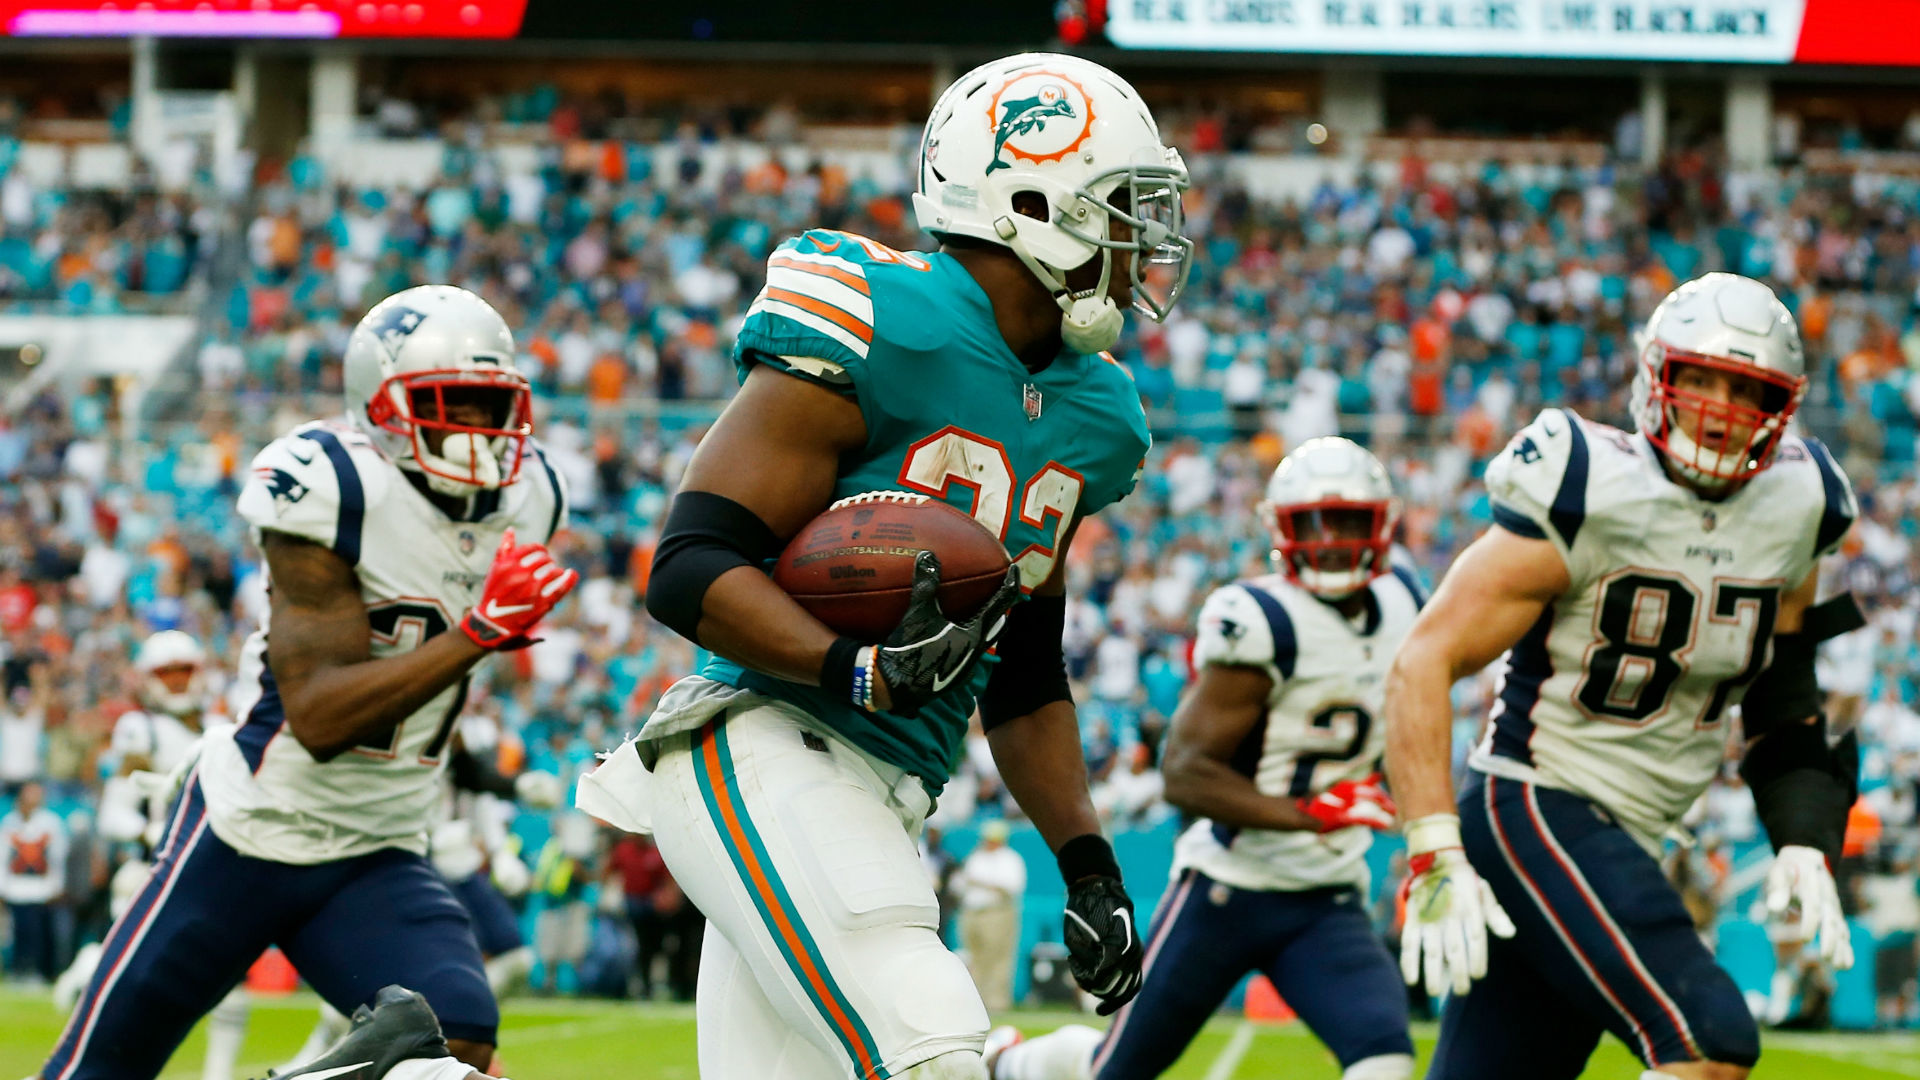 Miami defeats Patriots in dramatic fashion, touchdown on final play